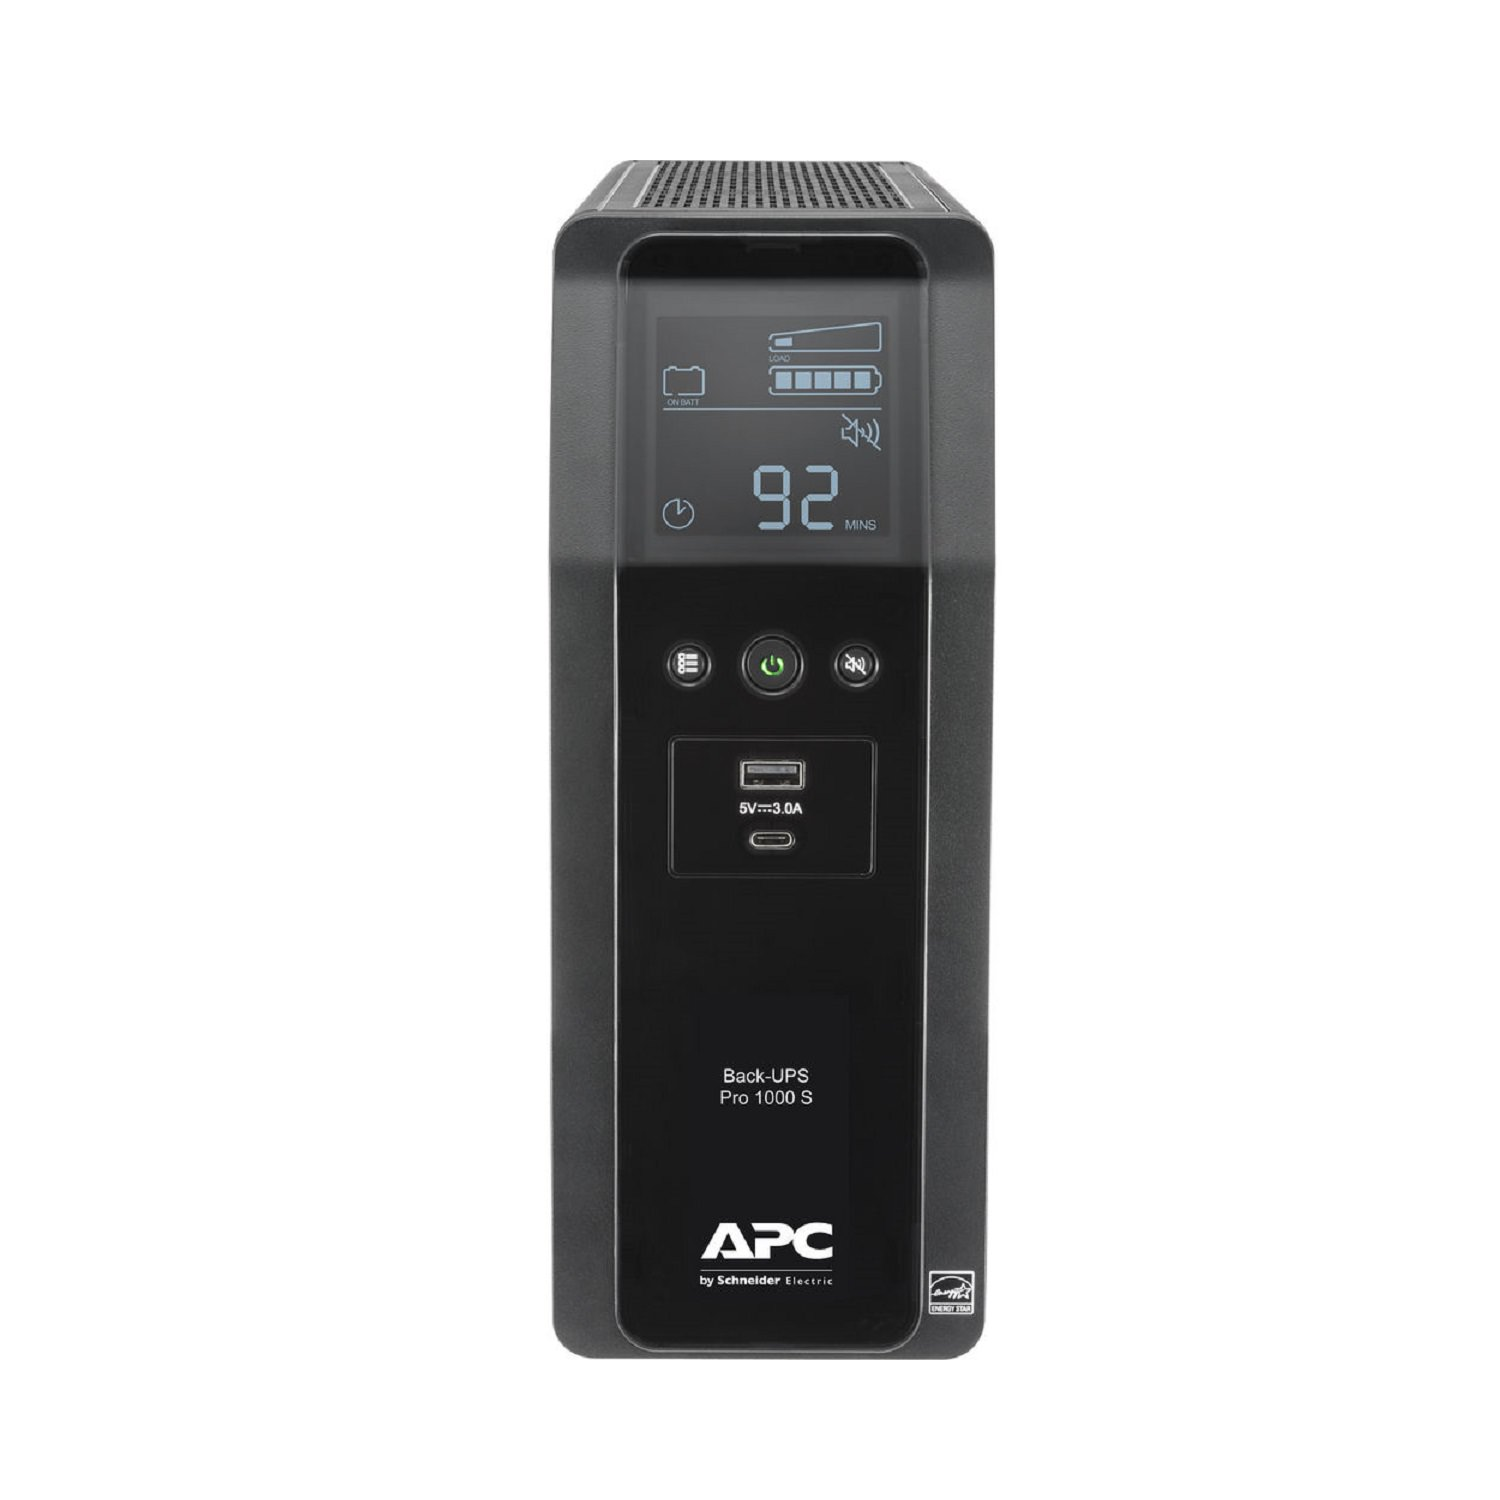 APC BR1000MS Back-UPS Pro Tower UPS